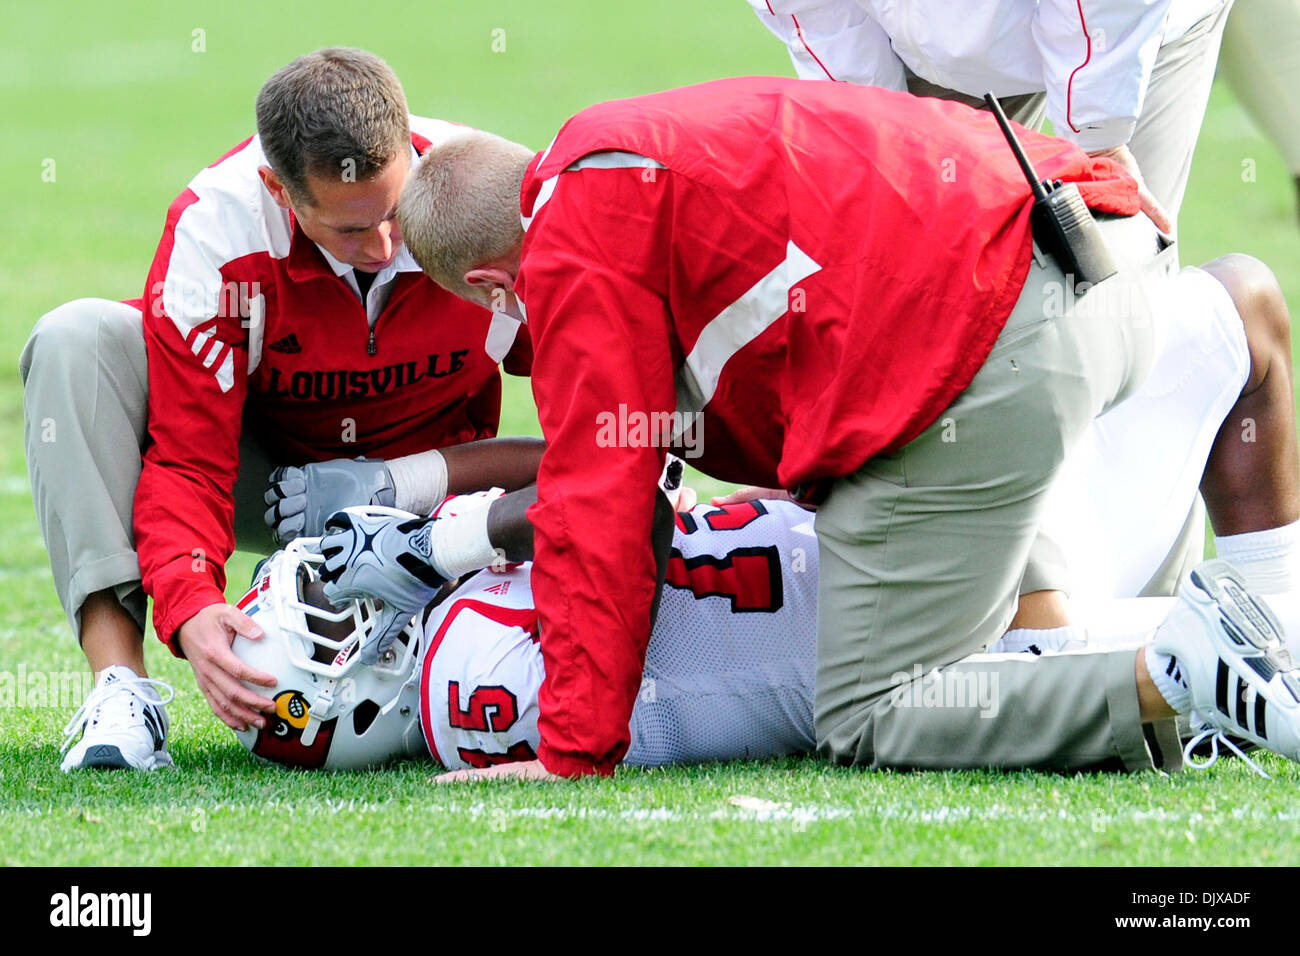 Oct. 30, 2010 - Pittsburgh, Pennsylvania, United States of America - 30 October 2010: Louisville star RB Bi;al Powell (#15) is attended to by the Louisville medical staff after being injured in early second half action at Heinz Field in Pittsburgh Pennsylvania. Pittsburgh defeats Louisville 20-3. (Credit Image: © Paul Lindenfelser/Southcreek Global/ZUMApress.com) - Stock Image